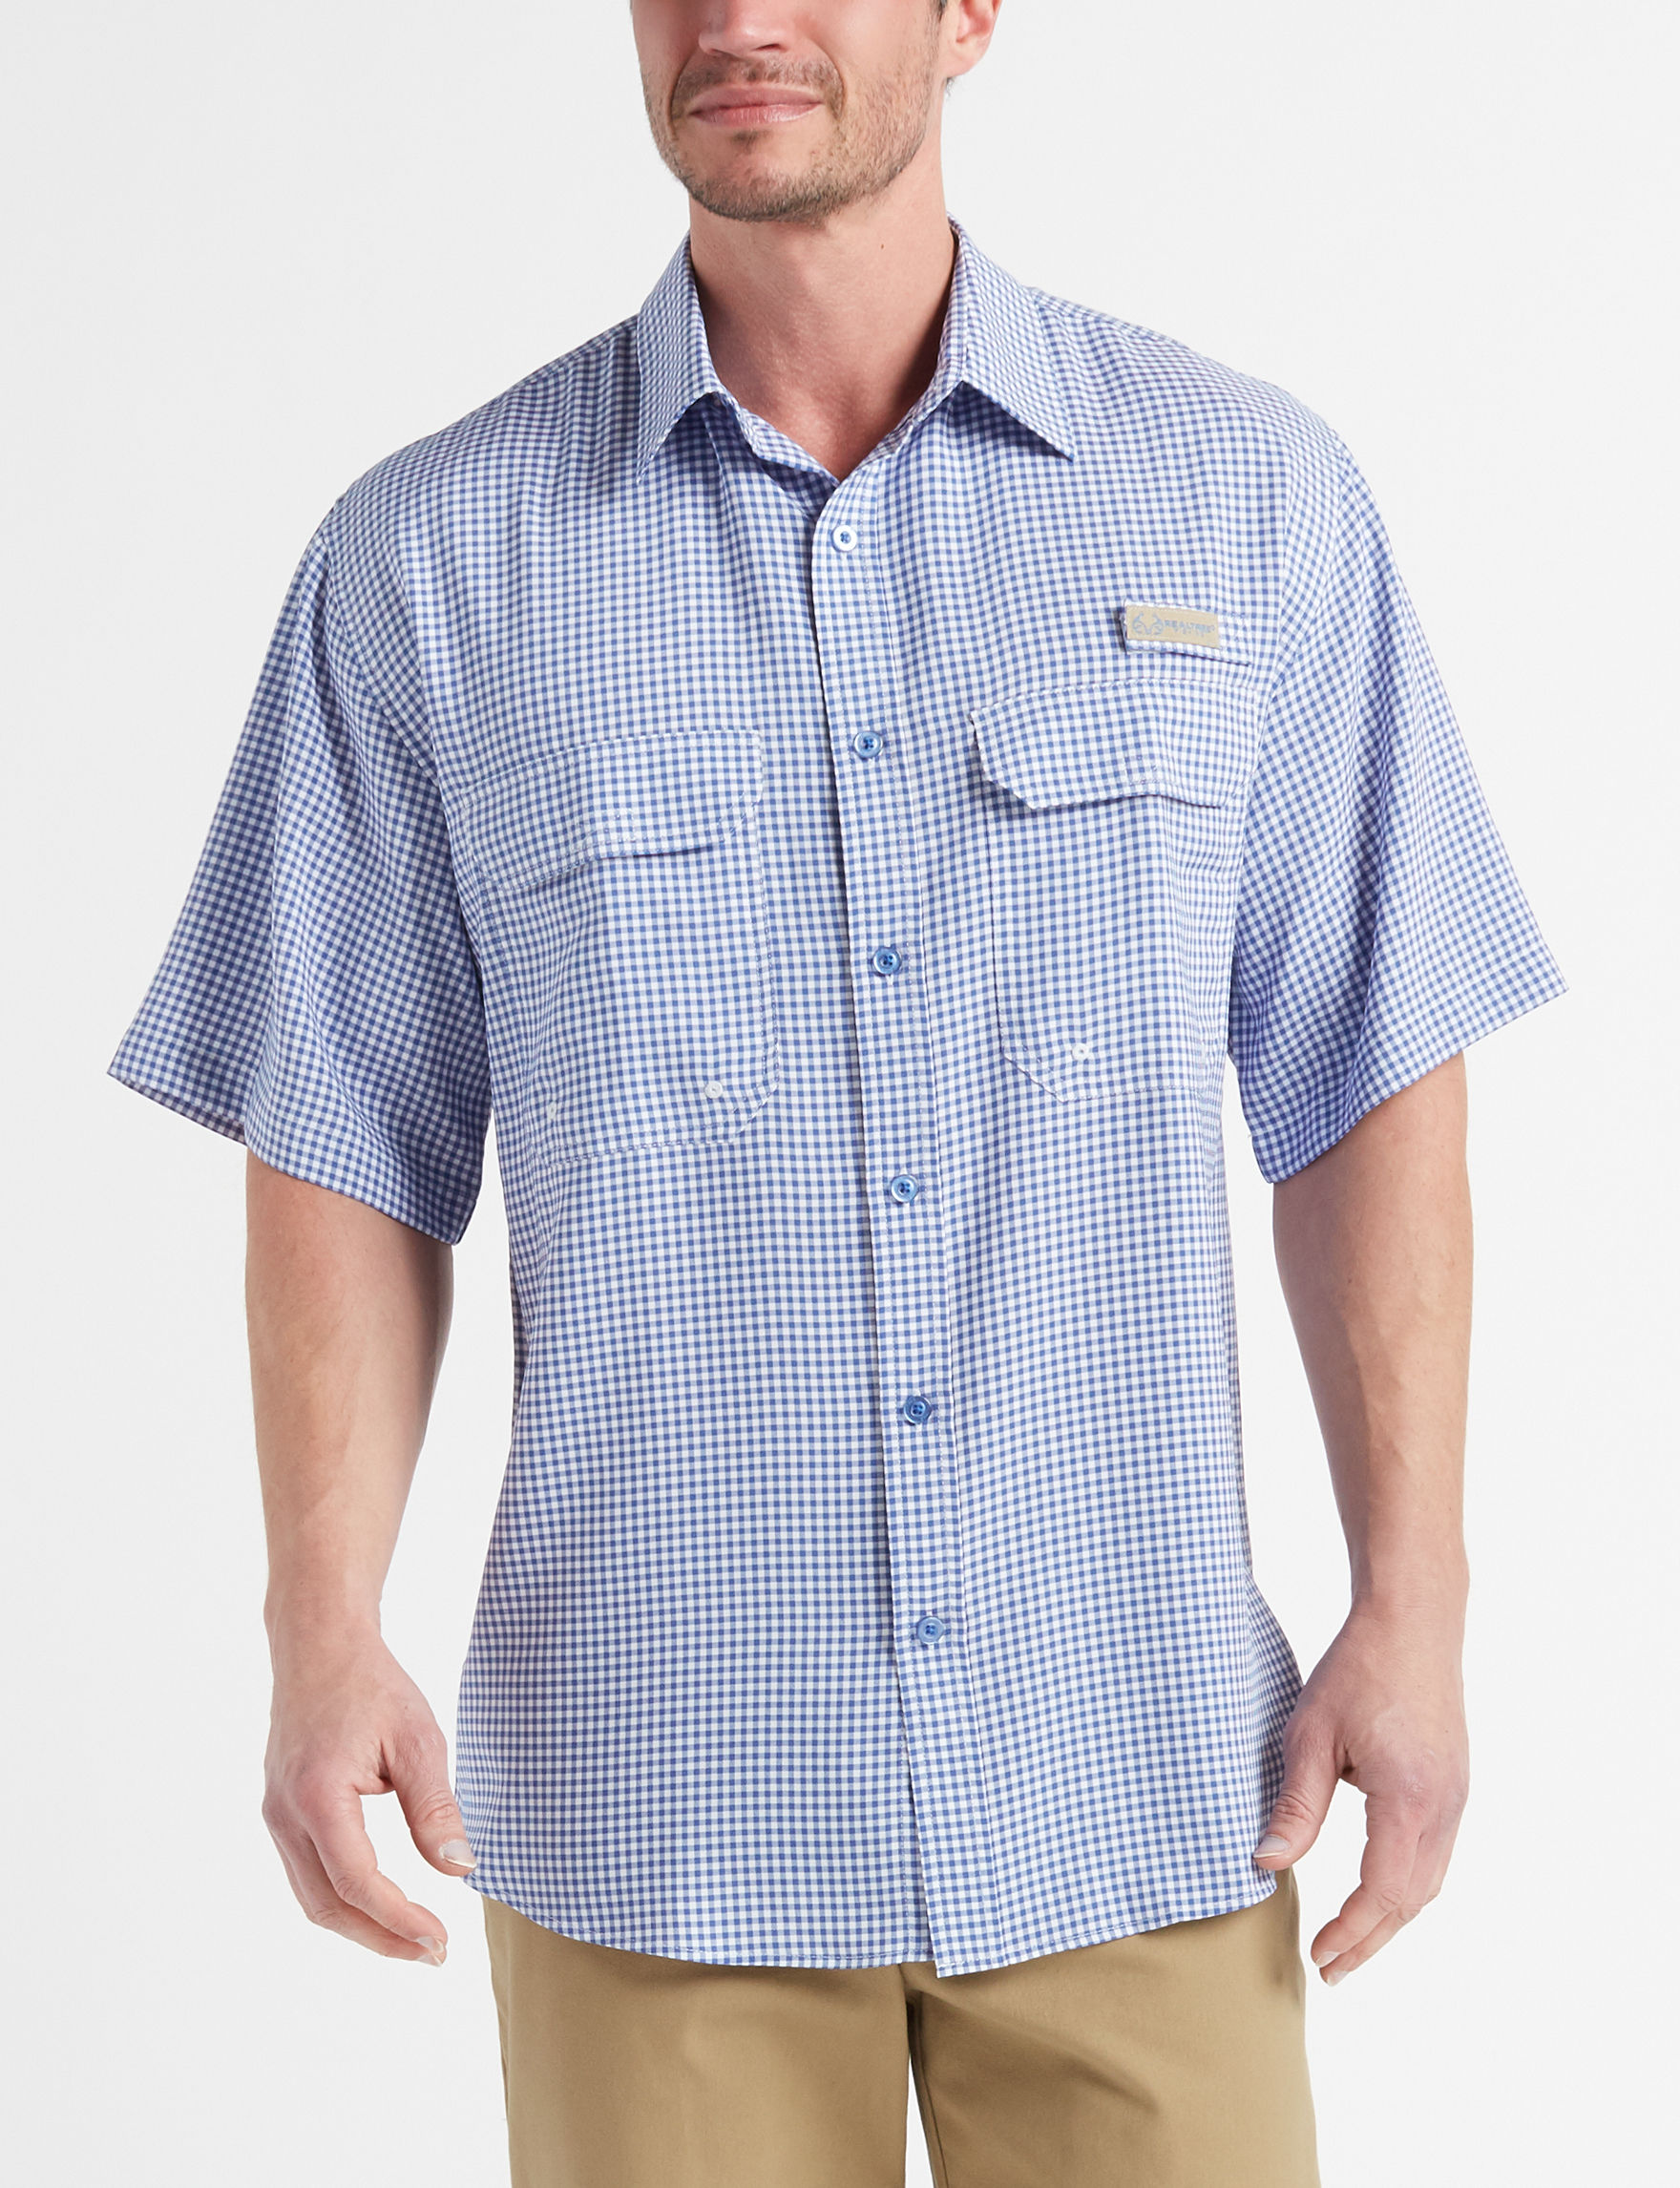 Realtree Blue / White Casual Button Down Shirts